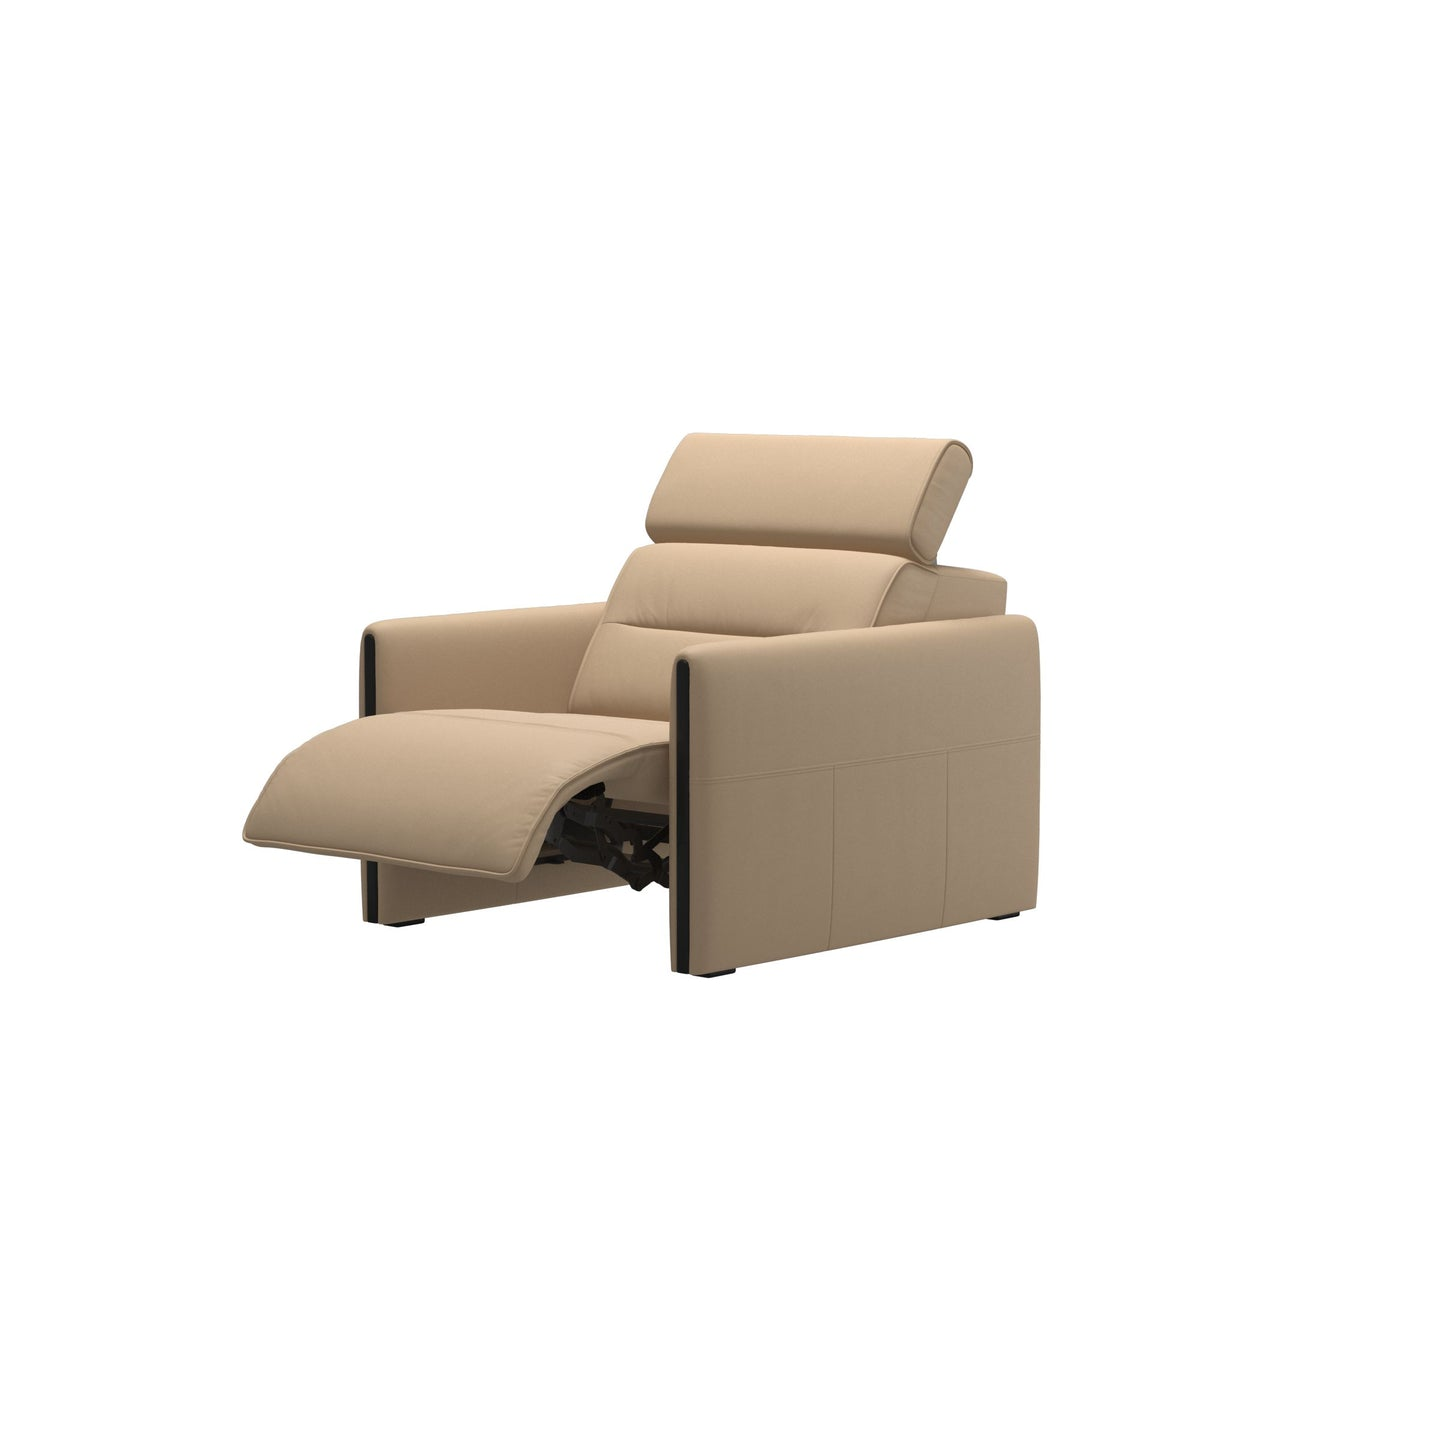 Stressless® Emily arm wood chair Power